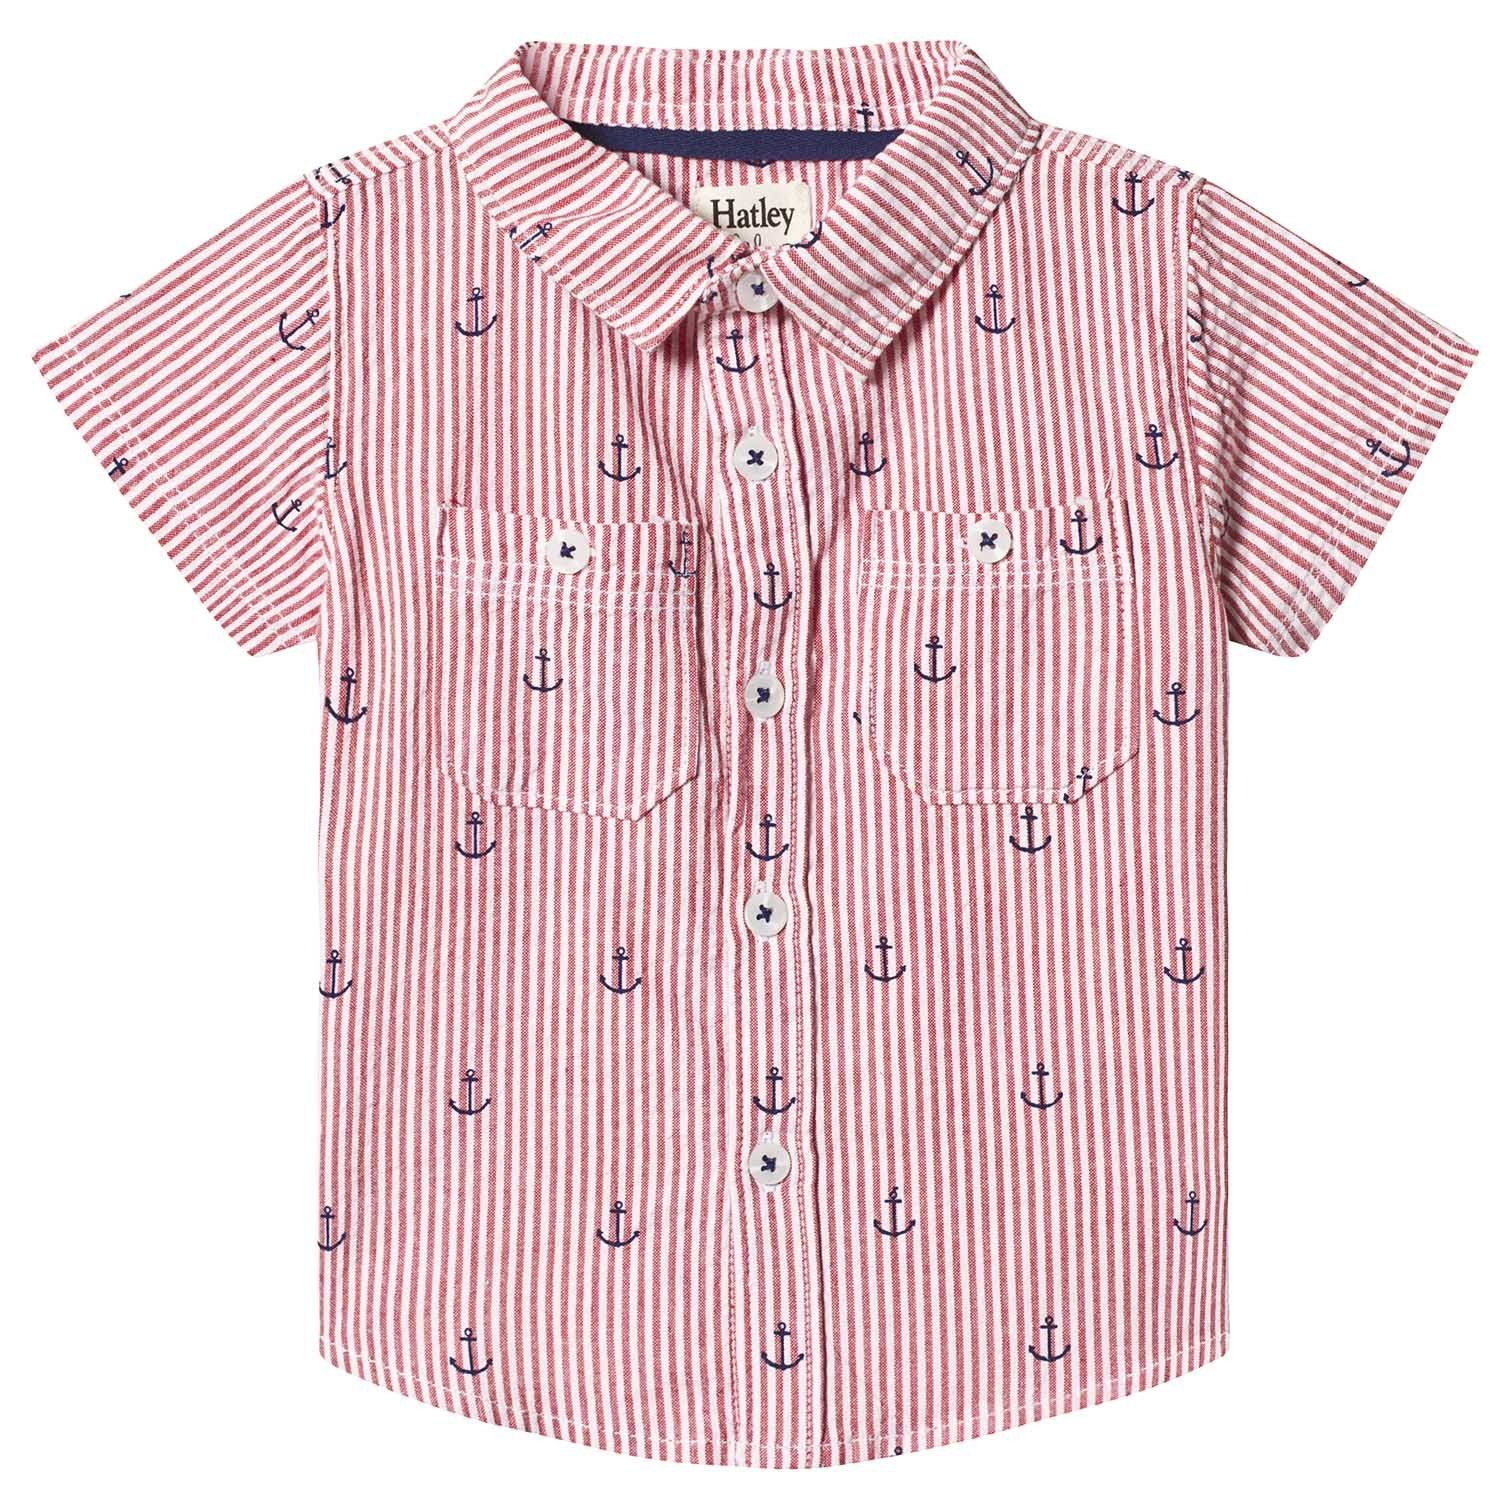 Hatley Baby Boys Short Sleeve Button Down Shirts